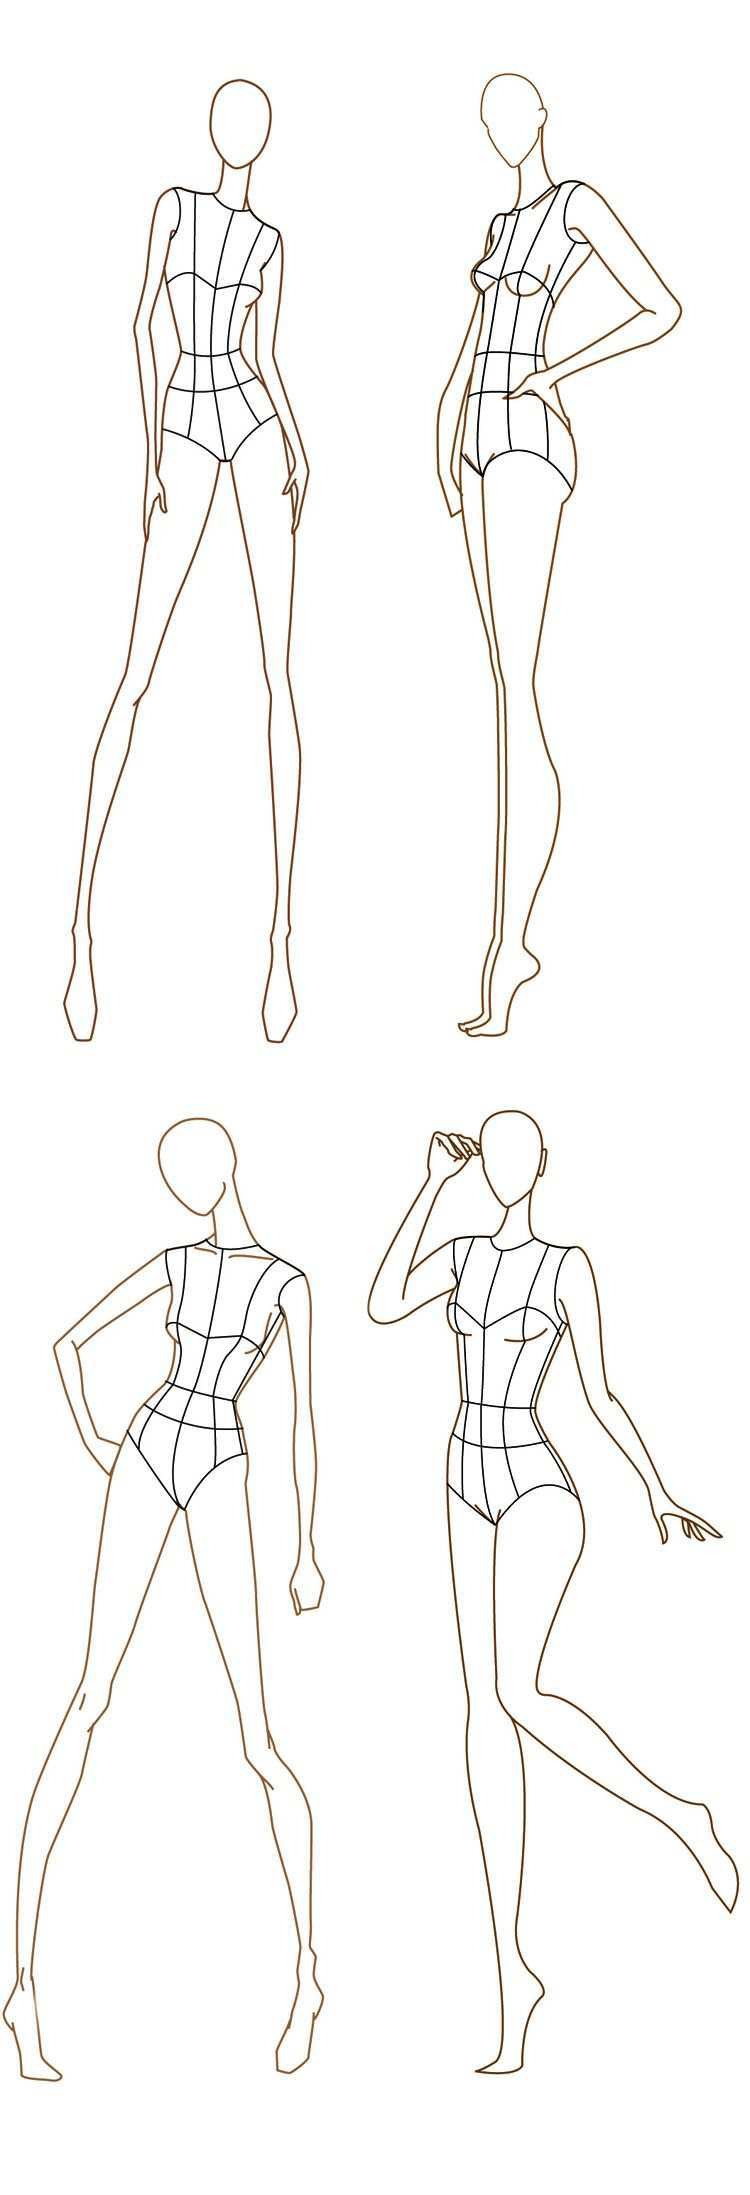 Free Fashion Croquis 120 Fashion Figure Templates Fashion Design Drawings Fashion Figure Templates Fashion Design Sketches